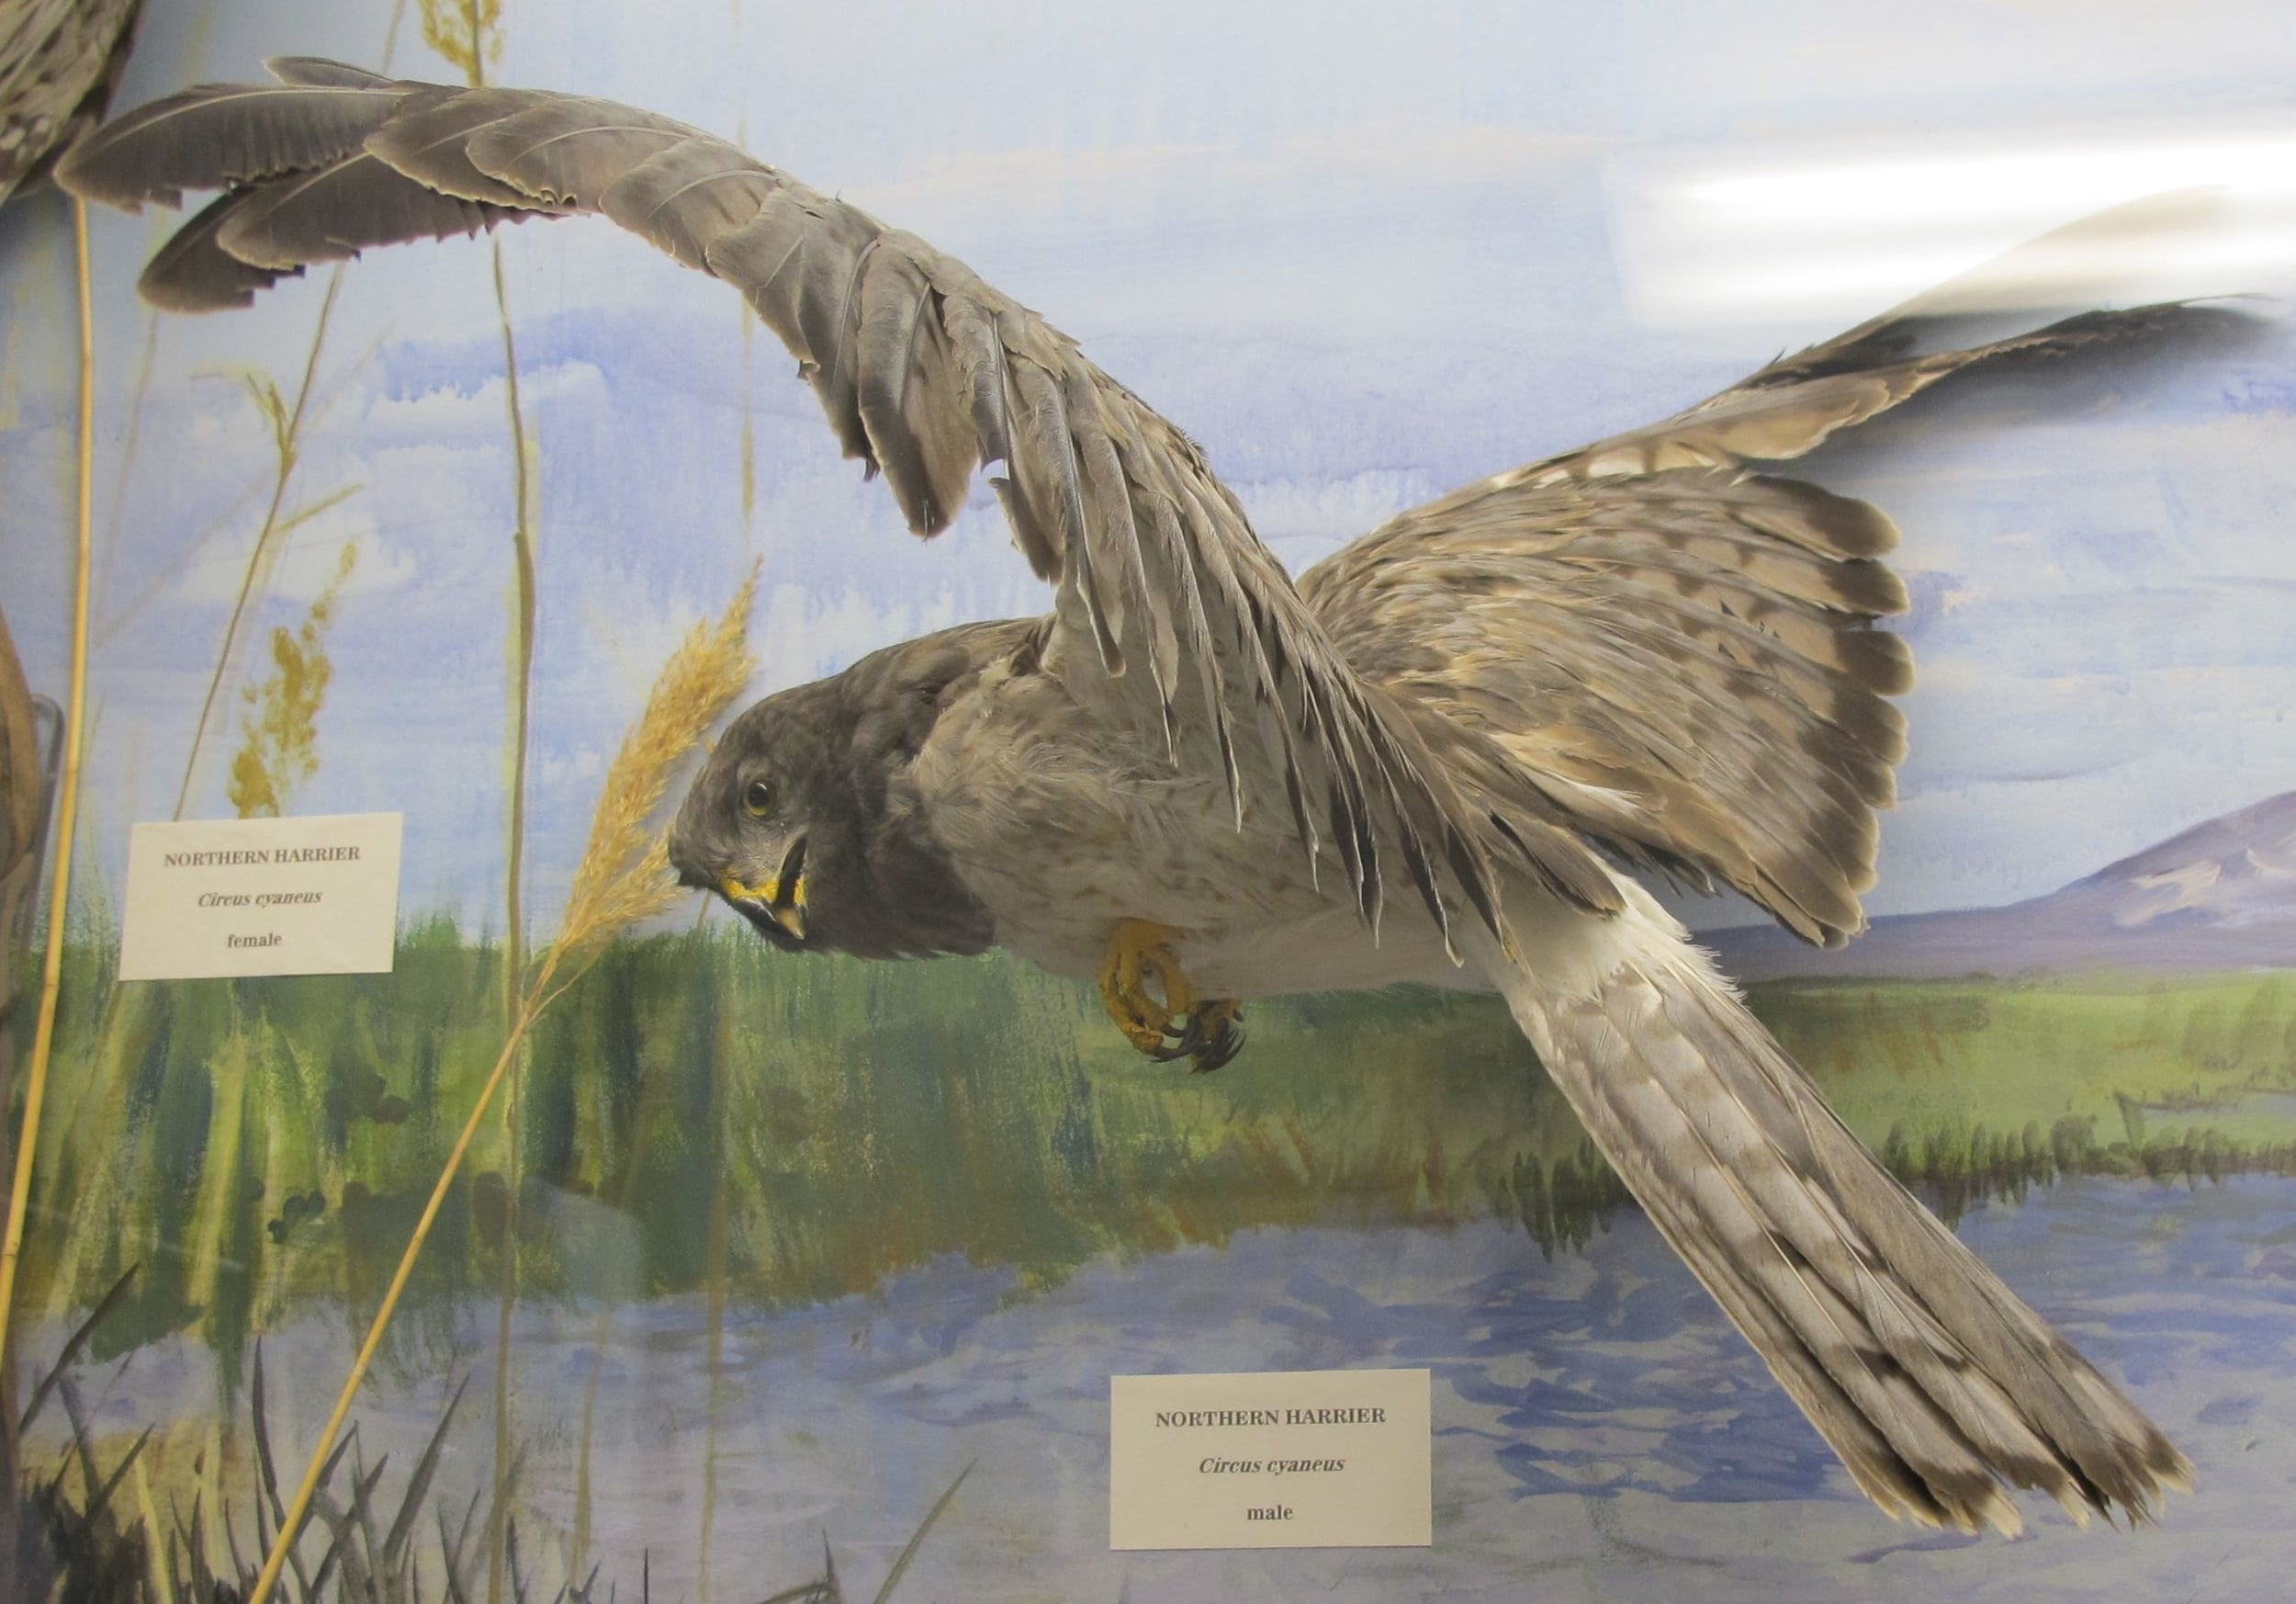 ...and the photo that inspired it. We took this picture at the visitors' center at the Malheur National Wildlife Refuge.